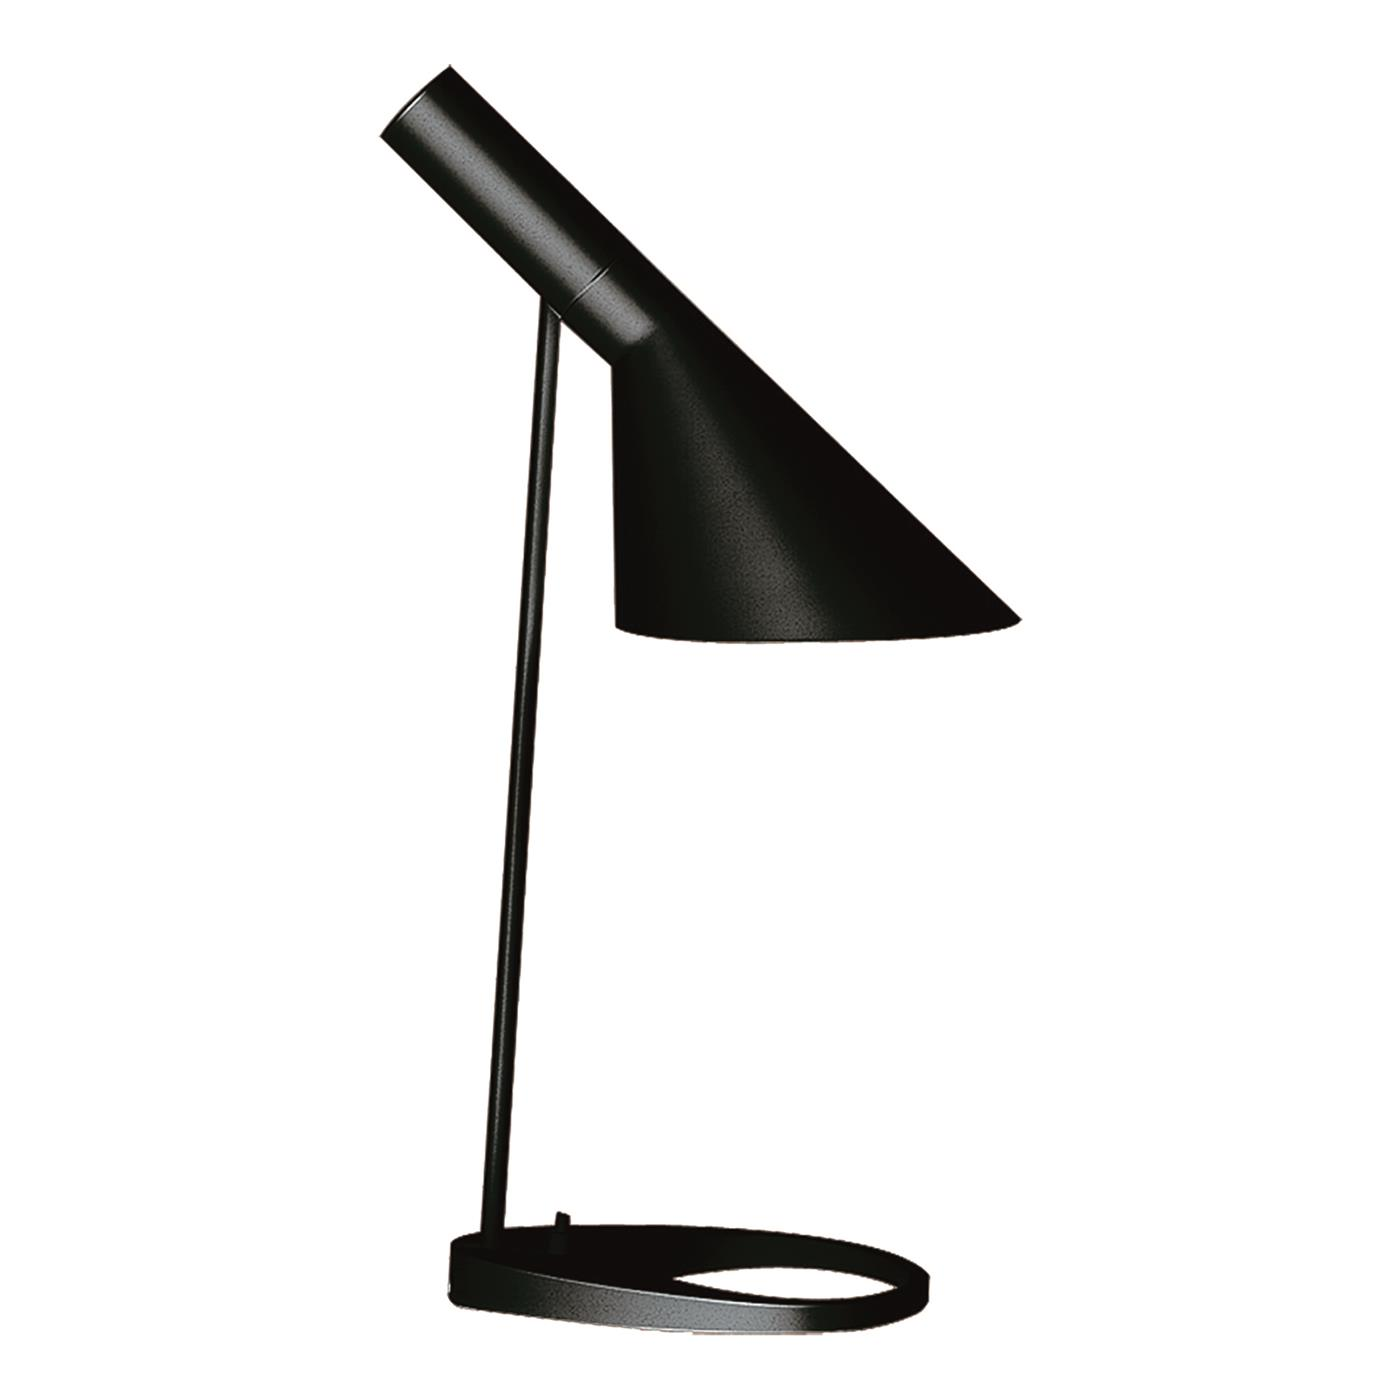 arne jacobsen lampe pictures to pin on pinterest. Black Bedroom Furniture Sets. Home Design Ideas